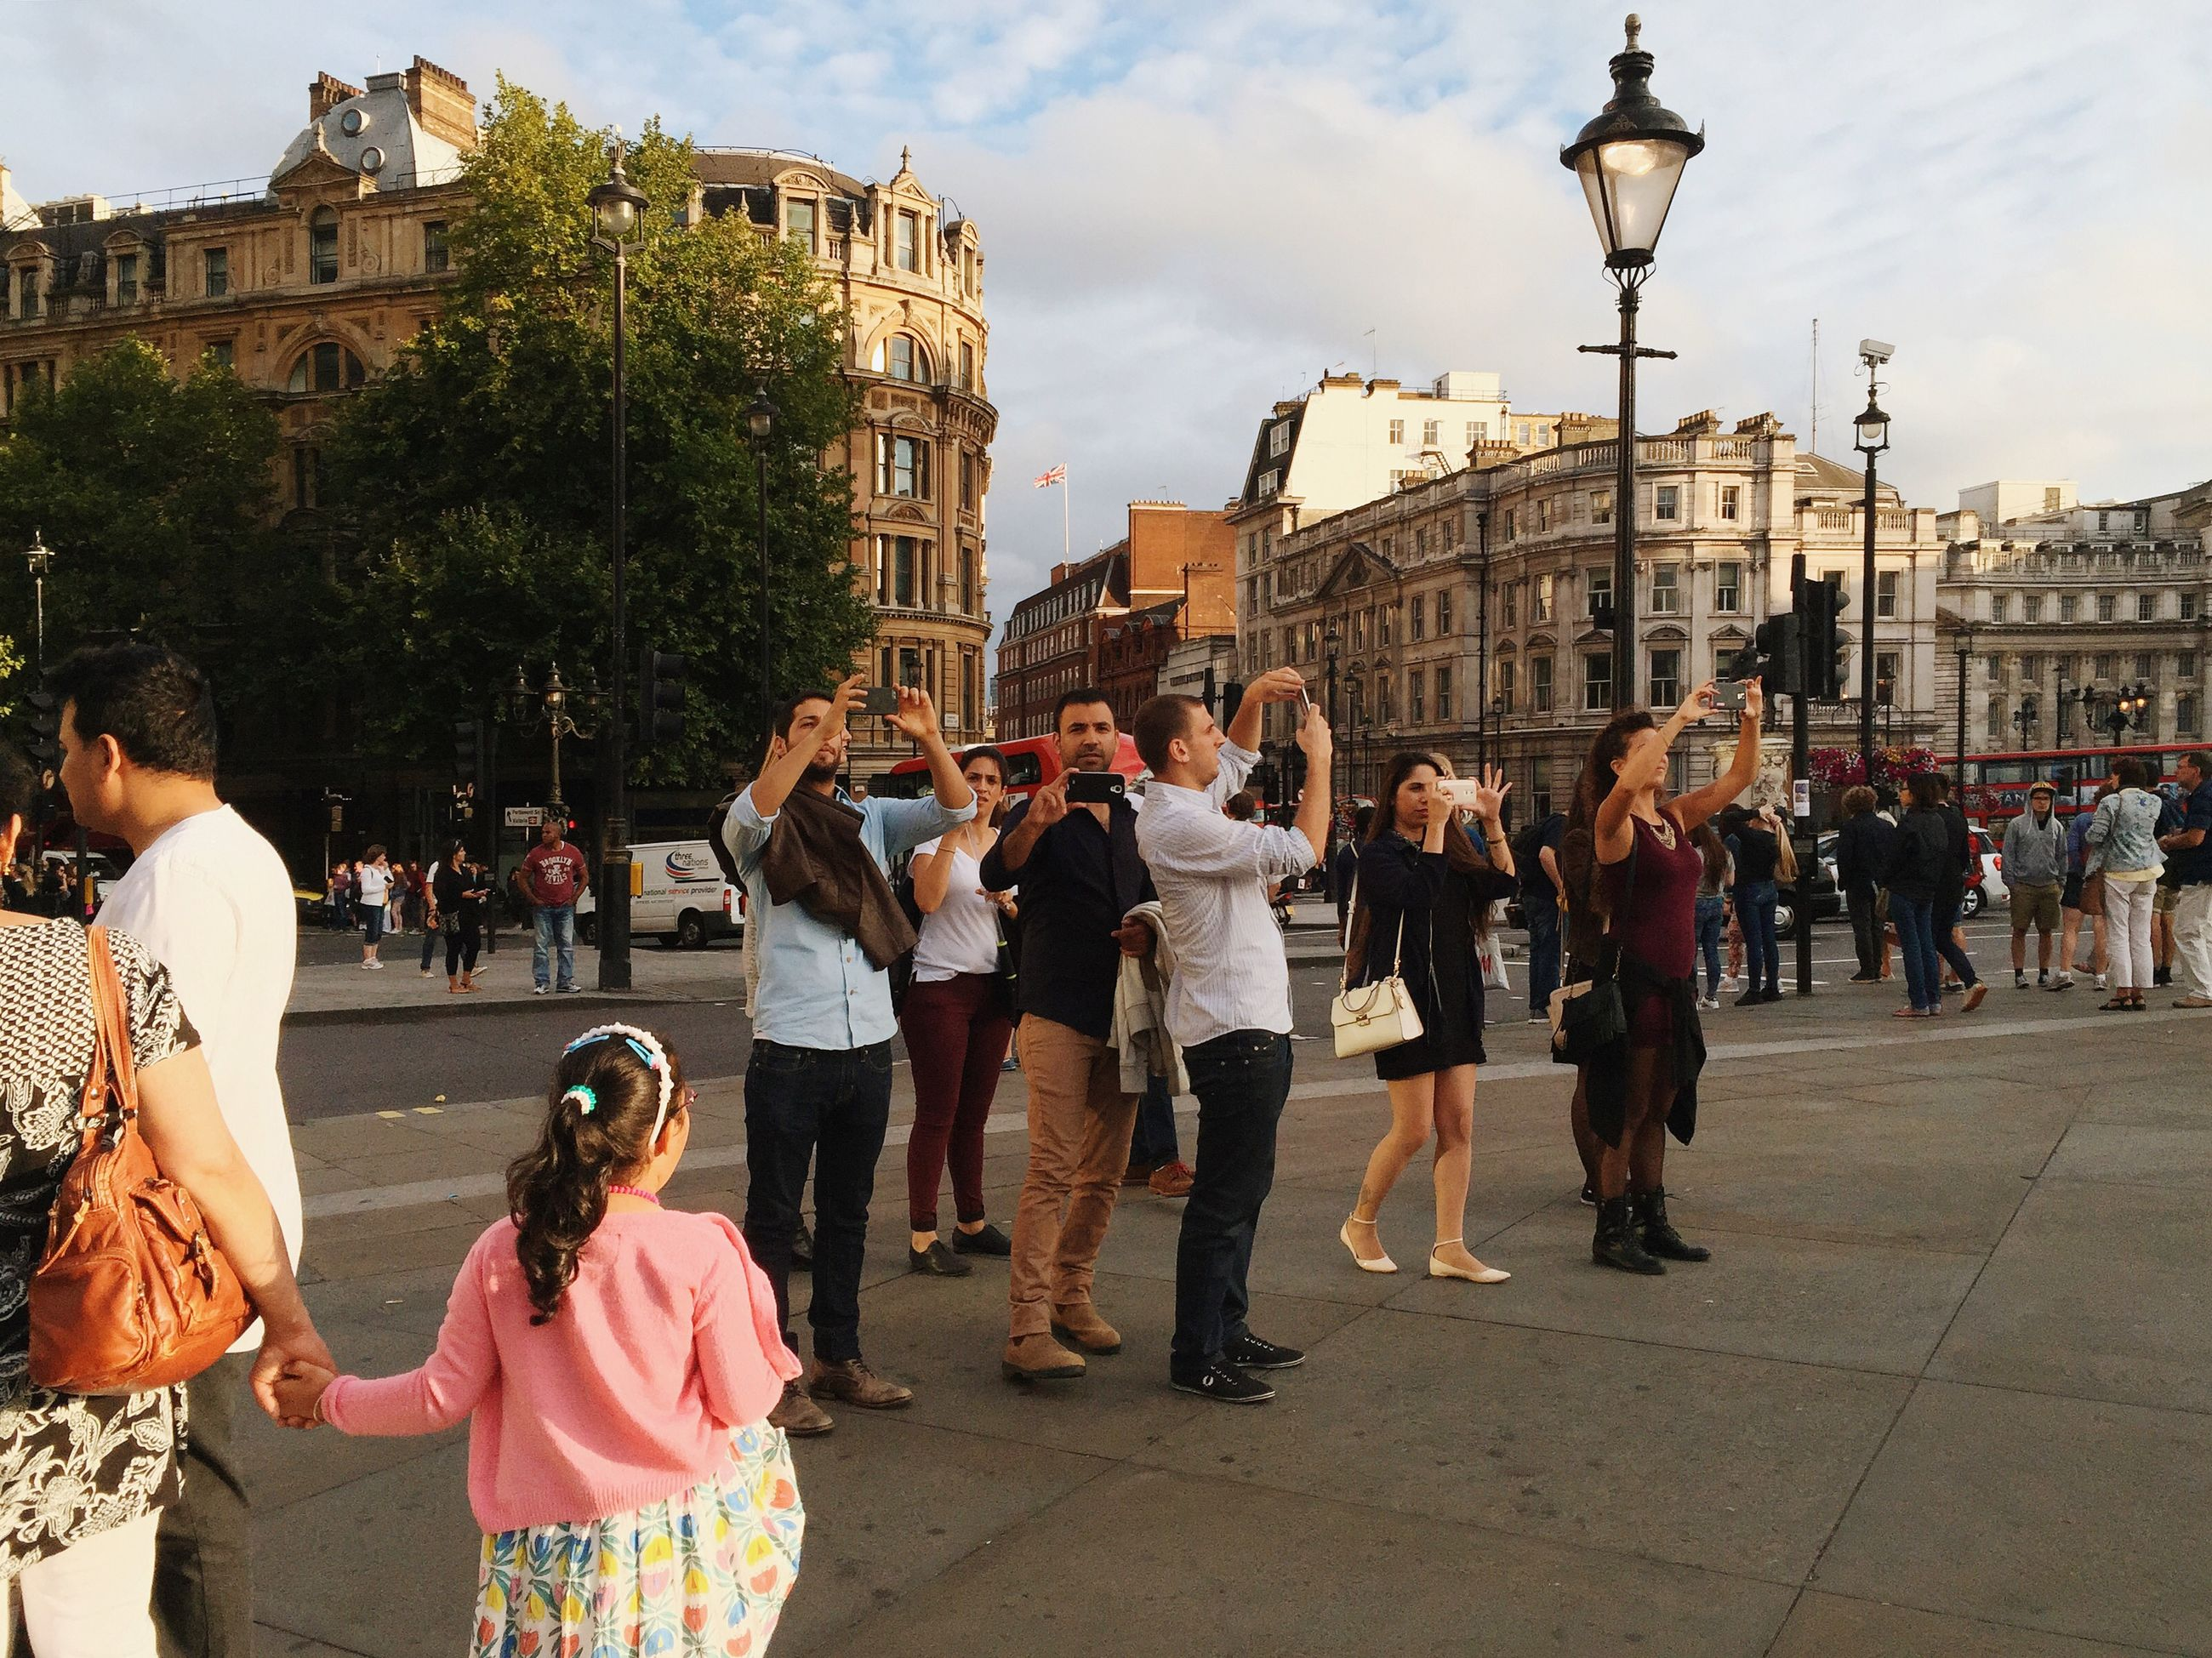 large group of people, building exterior, architecture, built structure, person, lifestyles, men, city, street, leisure activity, city life, mixed age range, walking, crowd, sky, tree, town square, tourist, city street